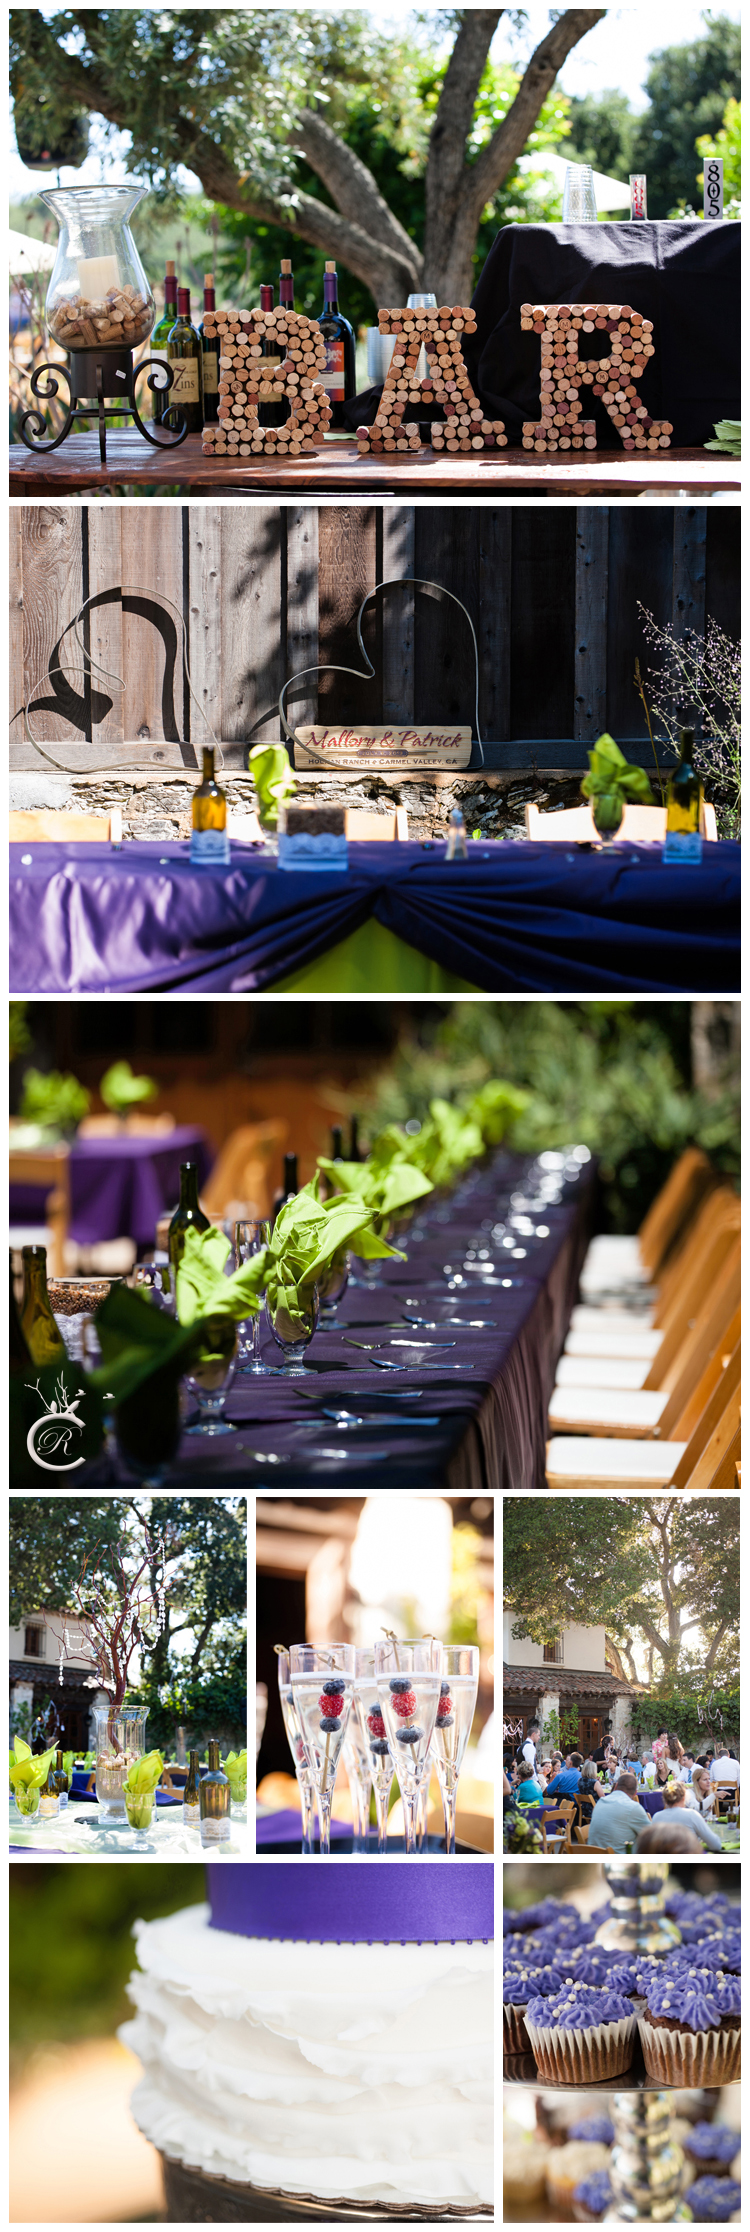 Wedding Details at Holman Ranch Vineyards